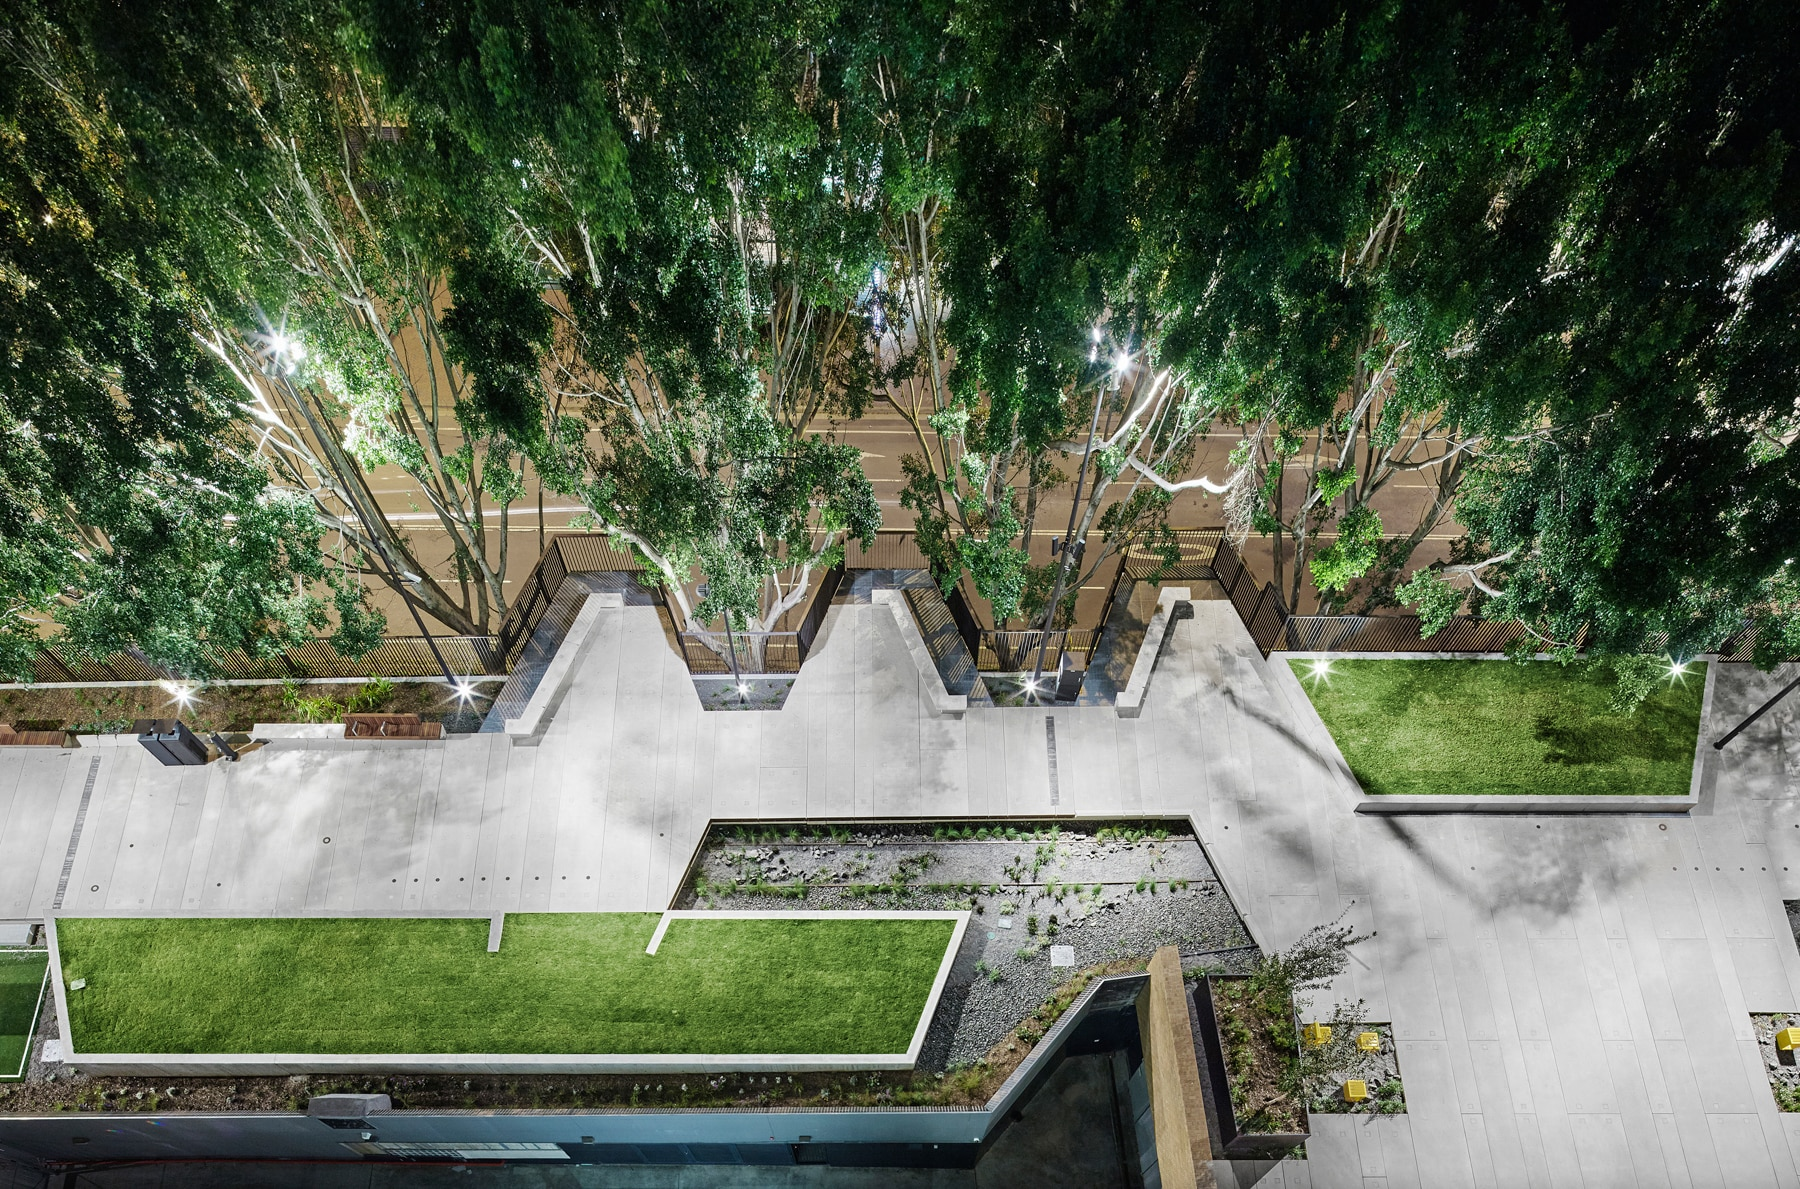 Overhead view of paved pathway surrounded by trees and greenery (ASPECT Studios/Florian Groehn)